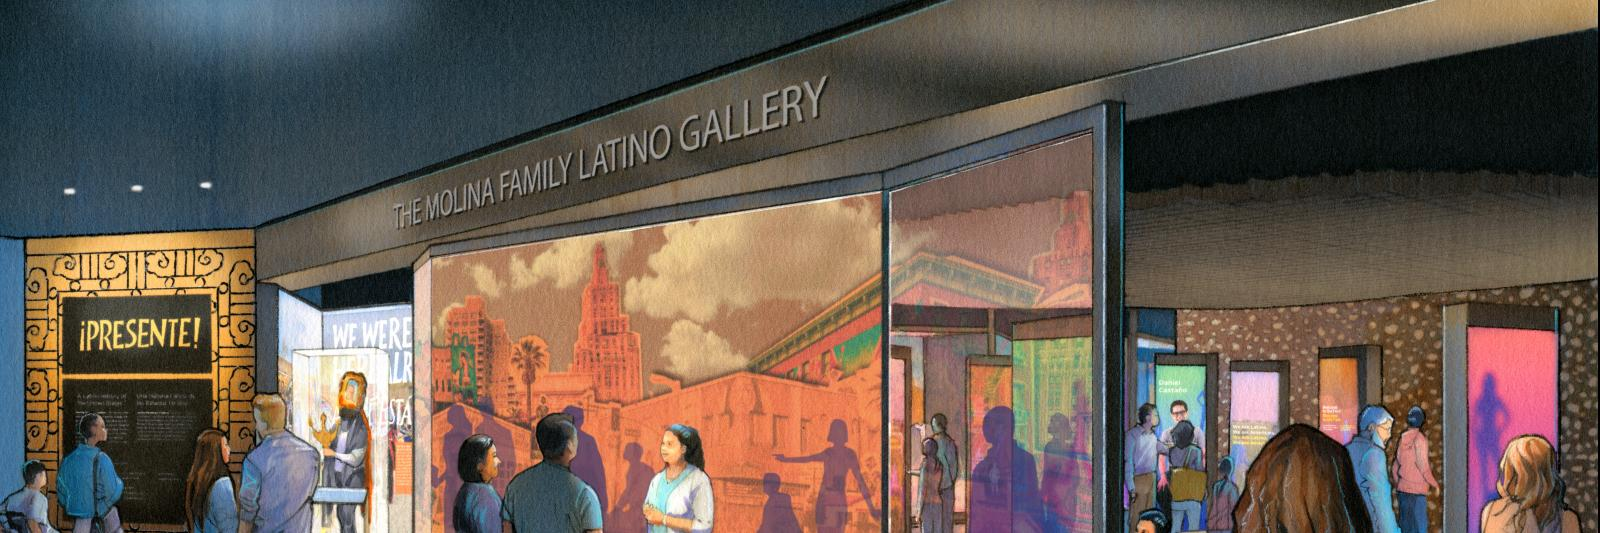 Artist rendering of the gallery entrance